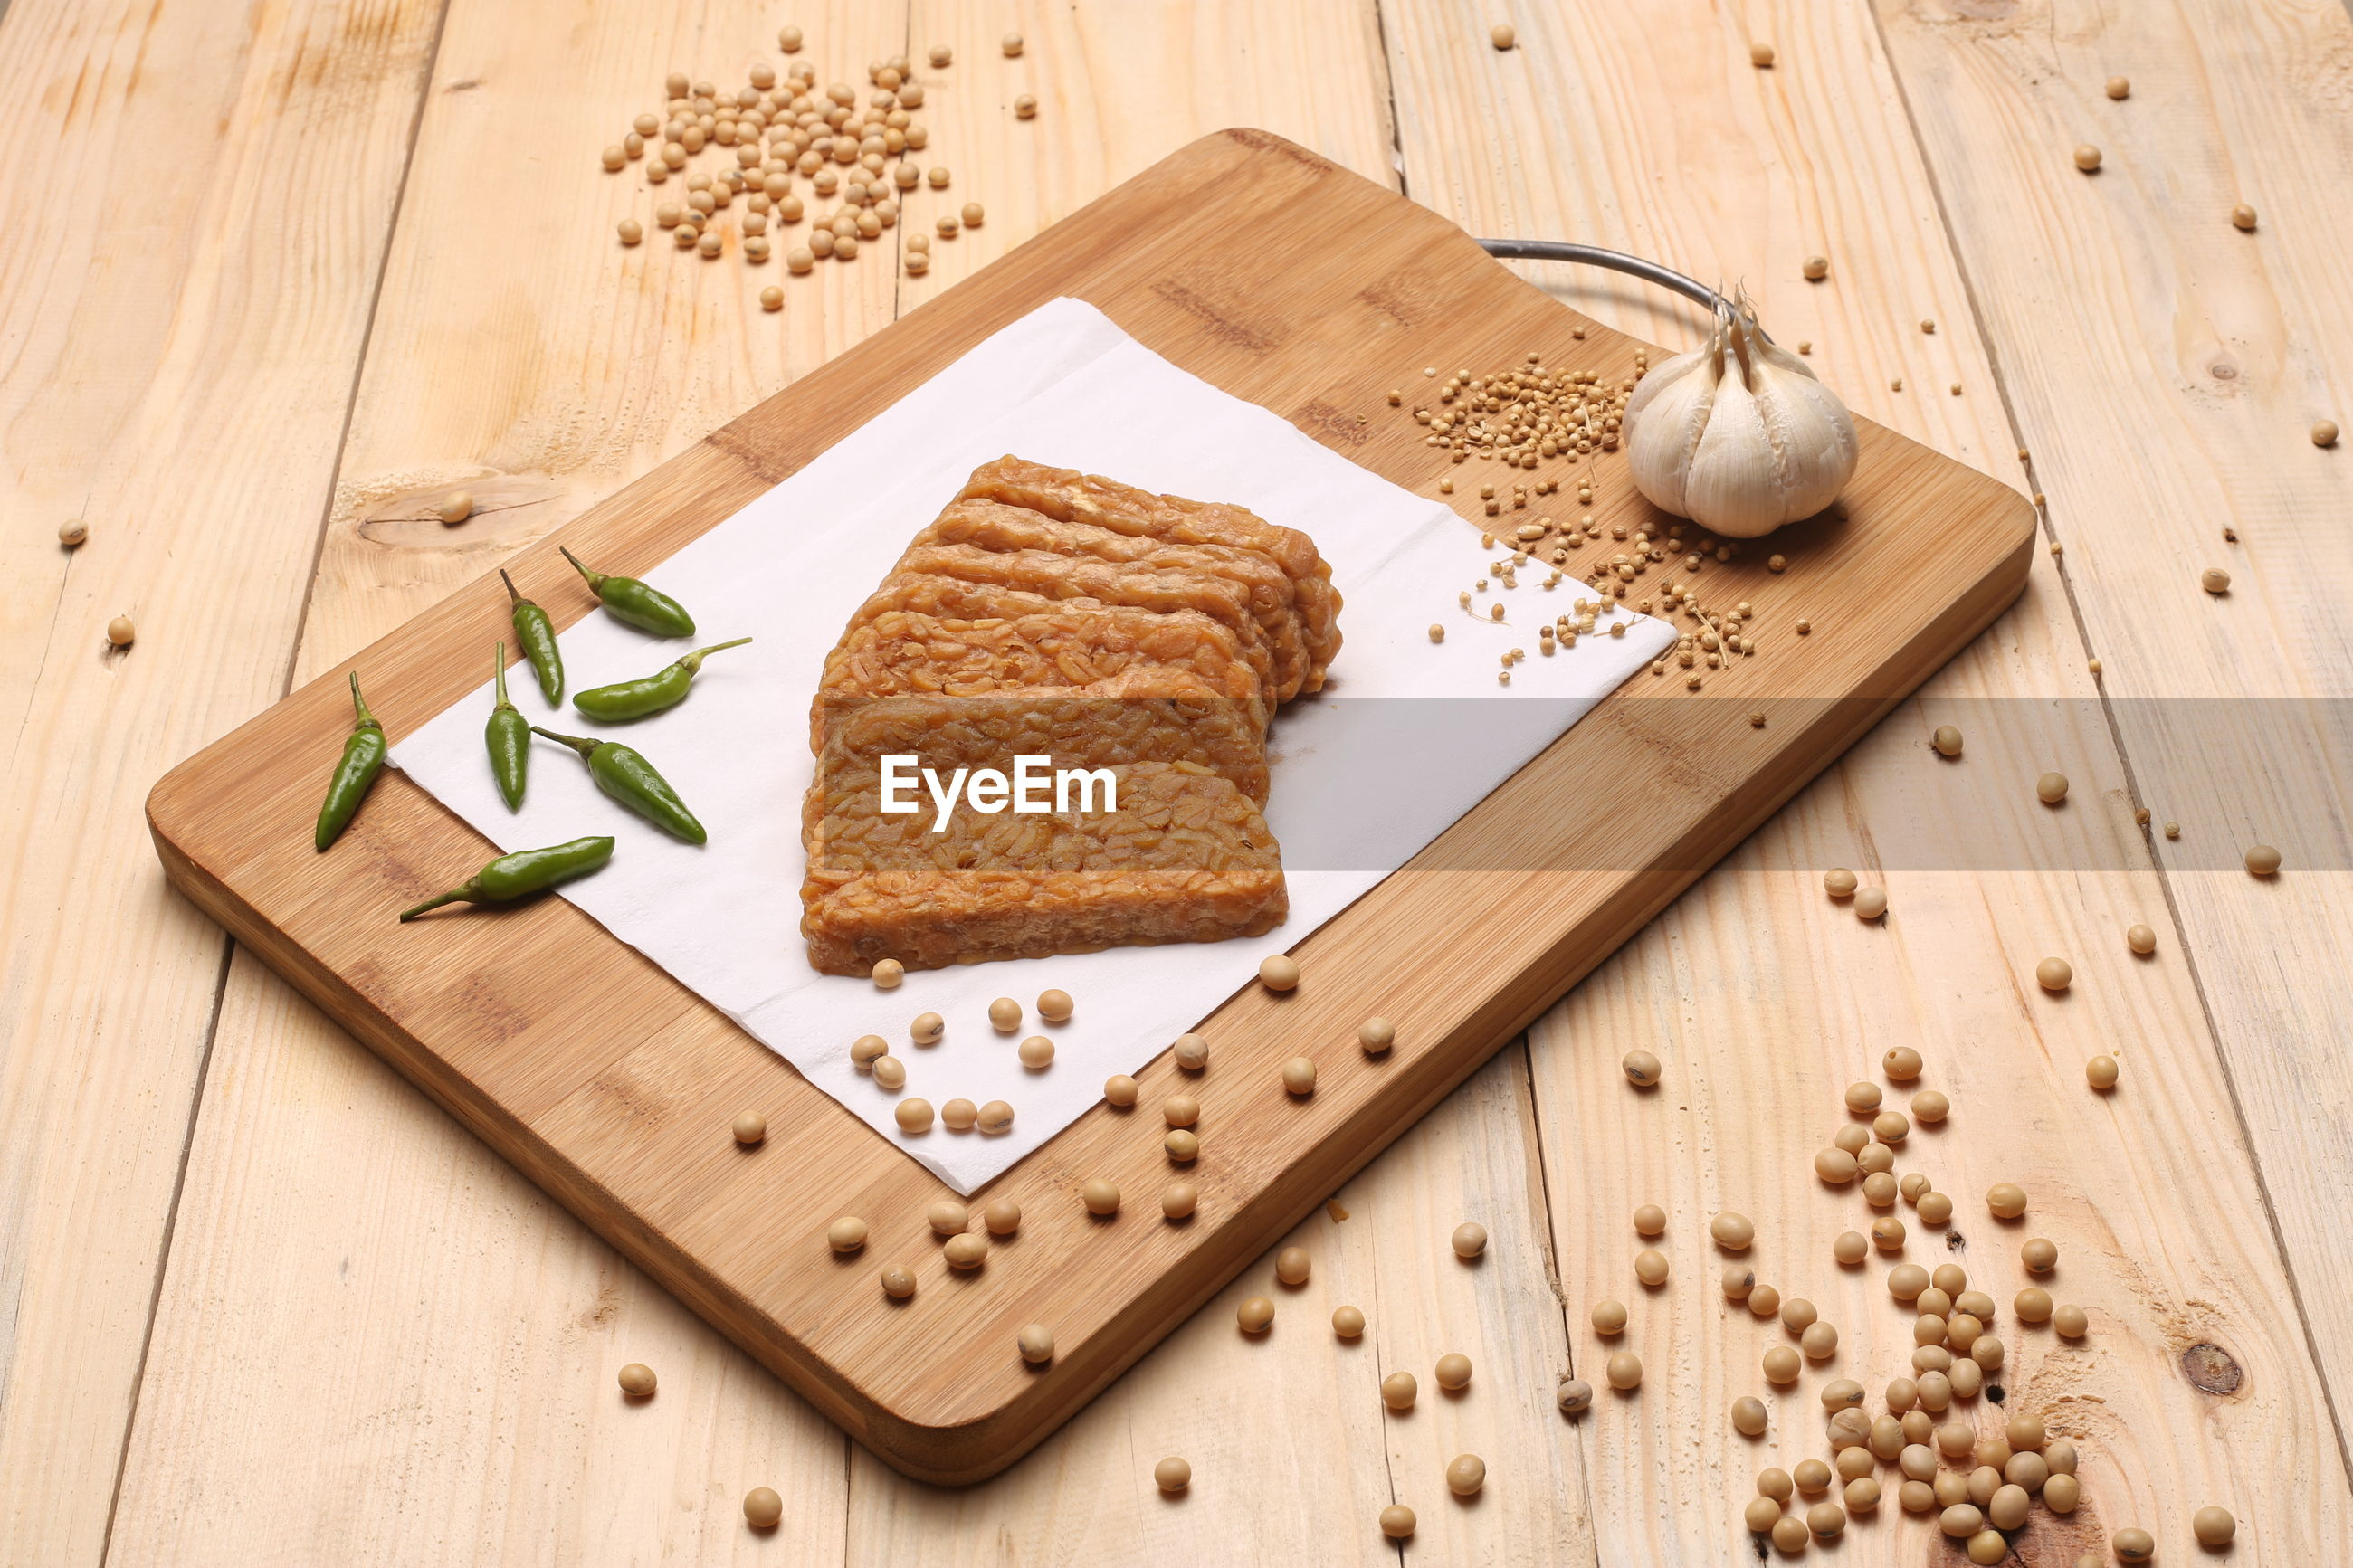 Close-up of food and ingredients on wooden table